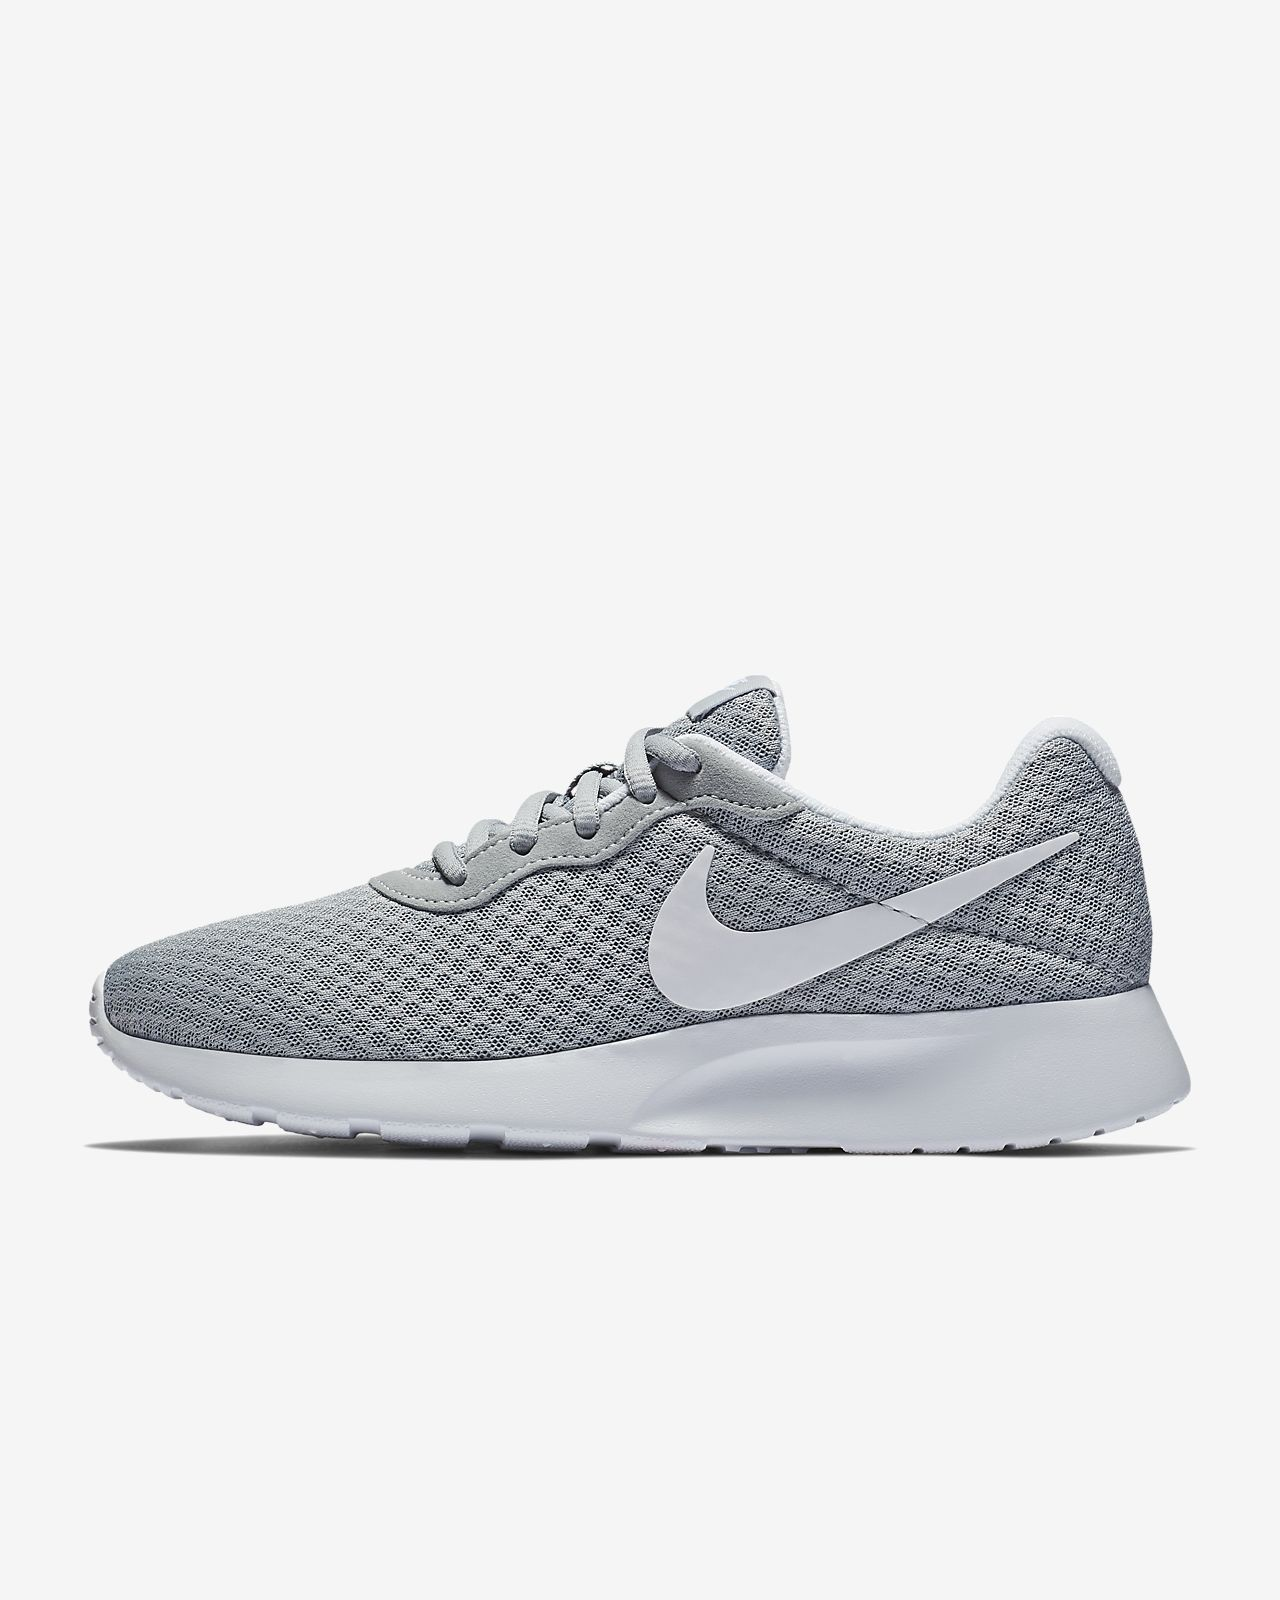 wholesale dealer 68681 ab133 Low Resolution Nike Tanjun Women's Shoe Nike Tanjun Women's Shoe